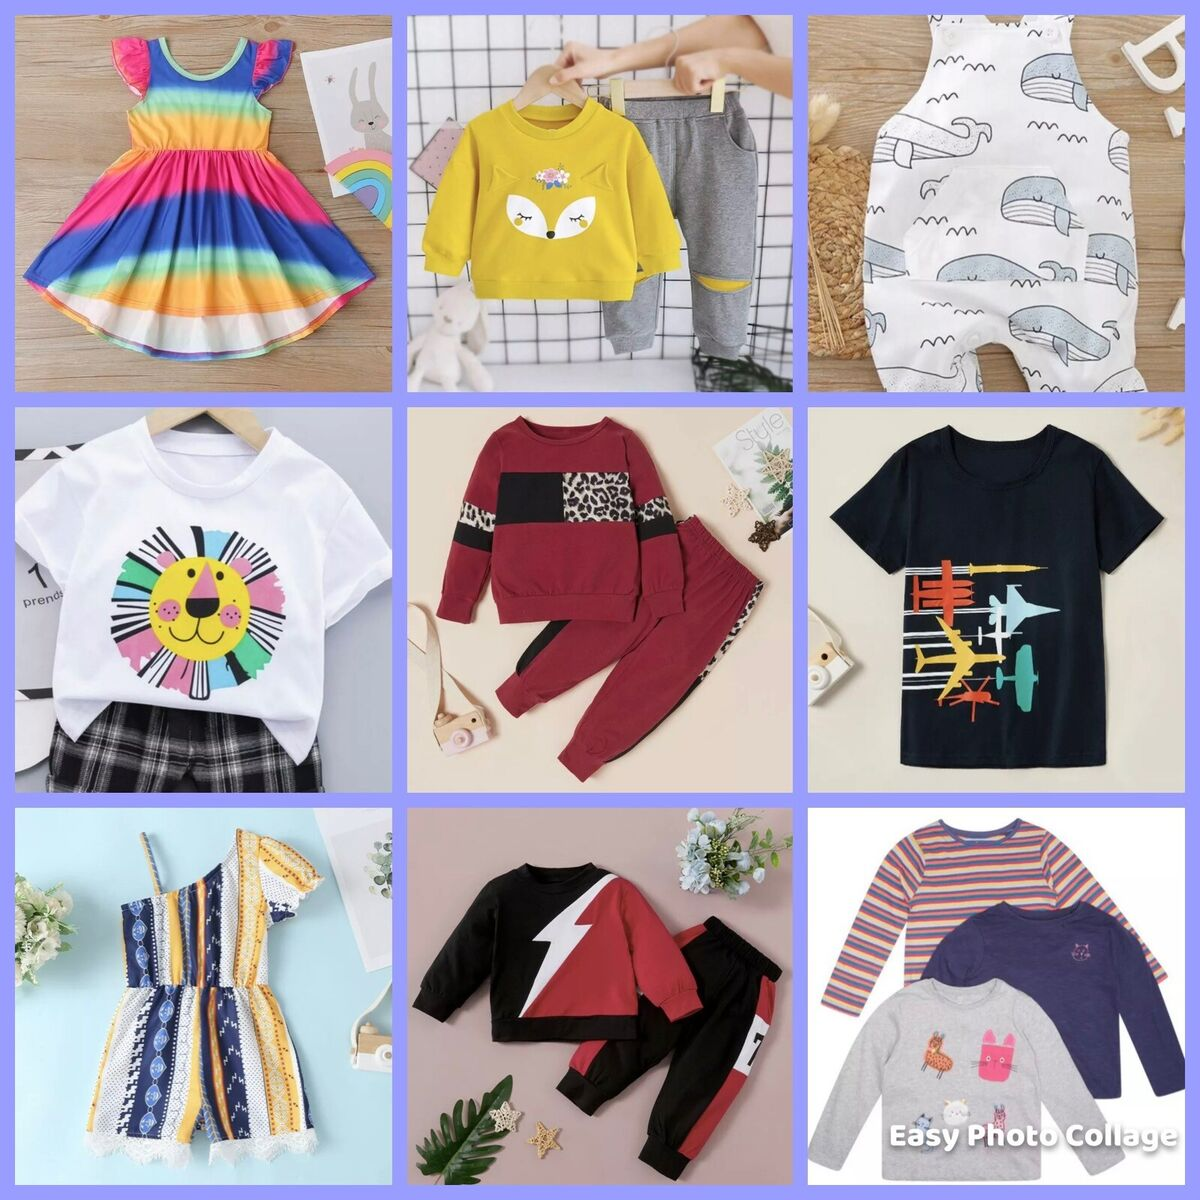 new2youkidsclothes